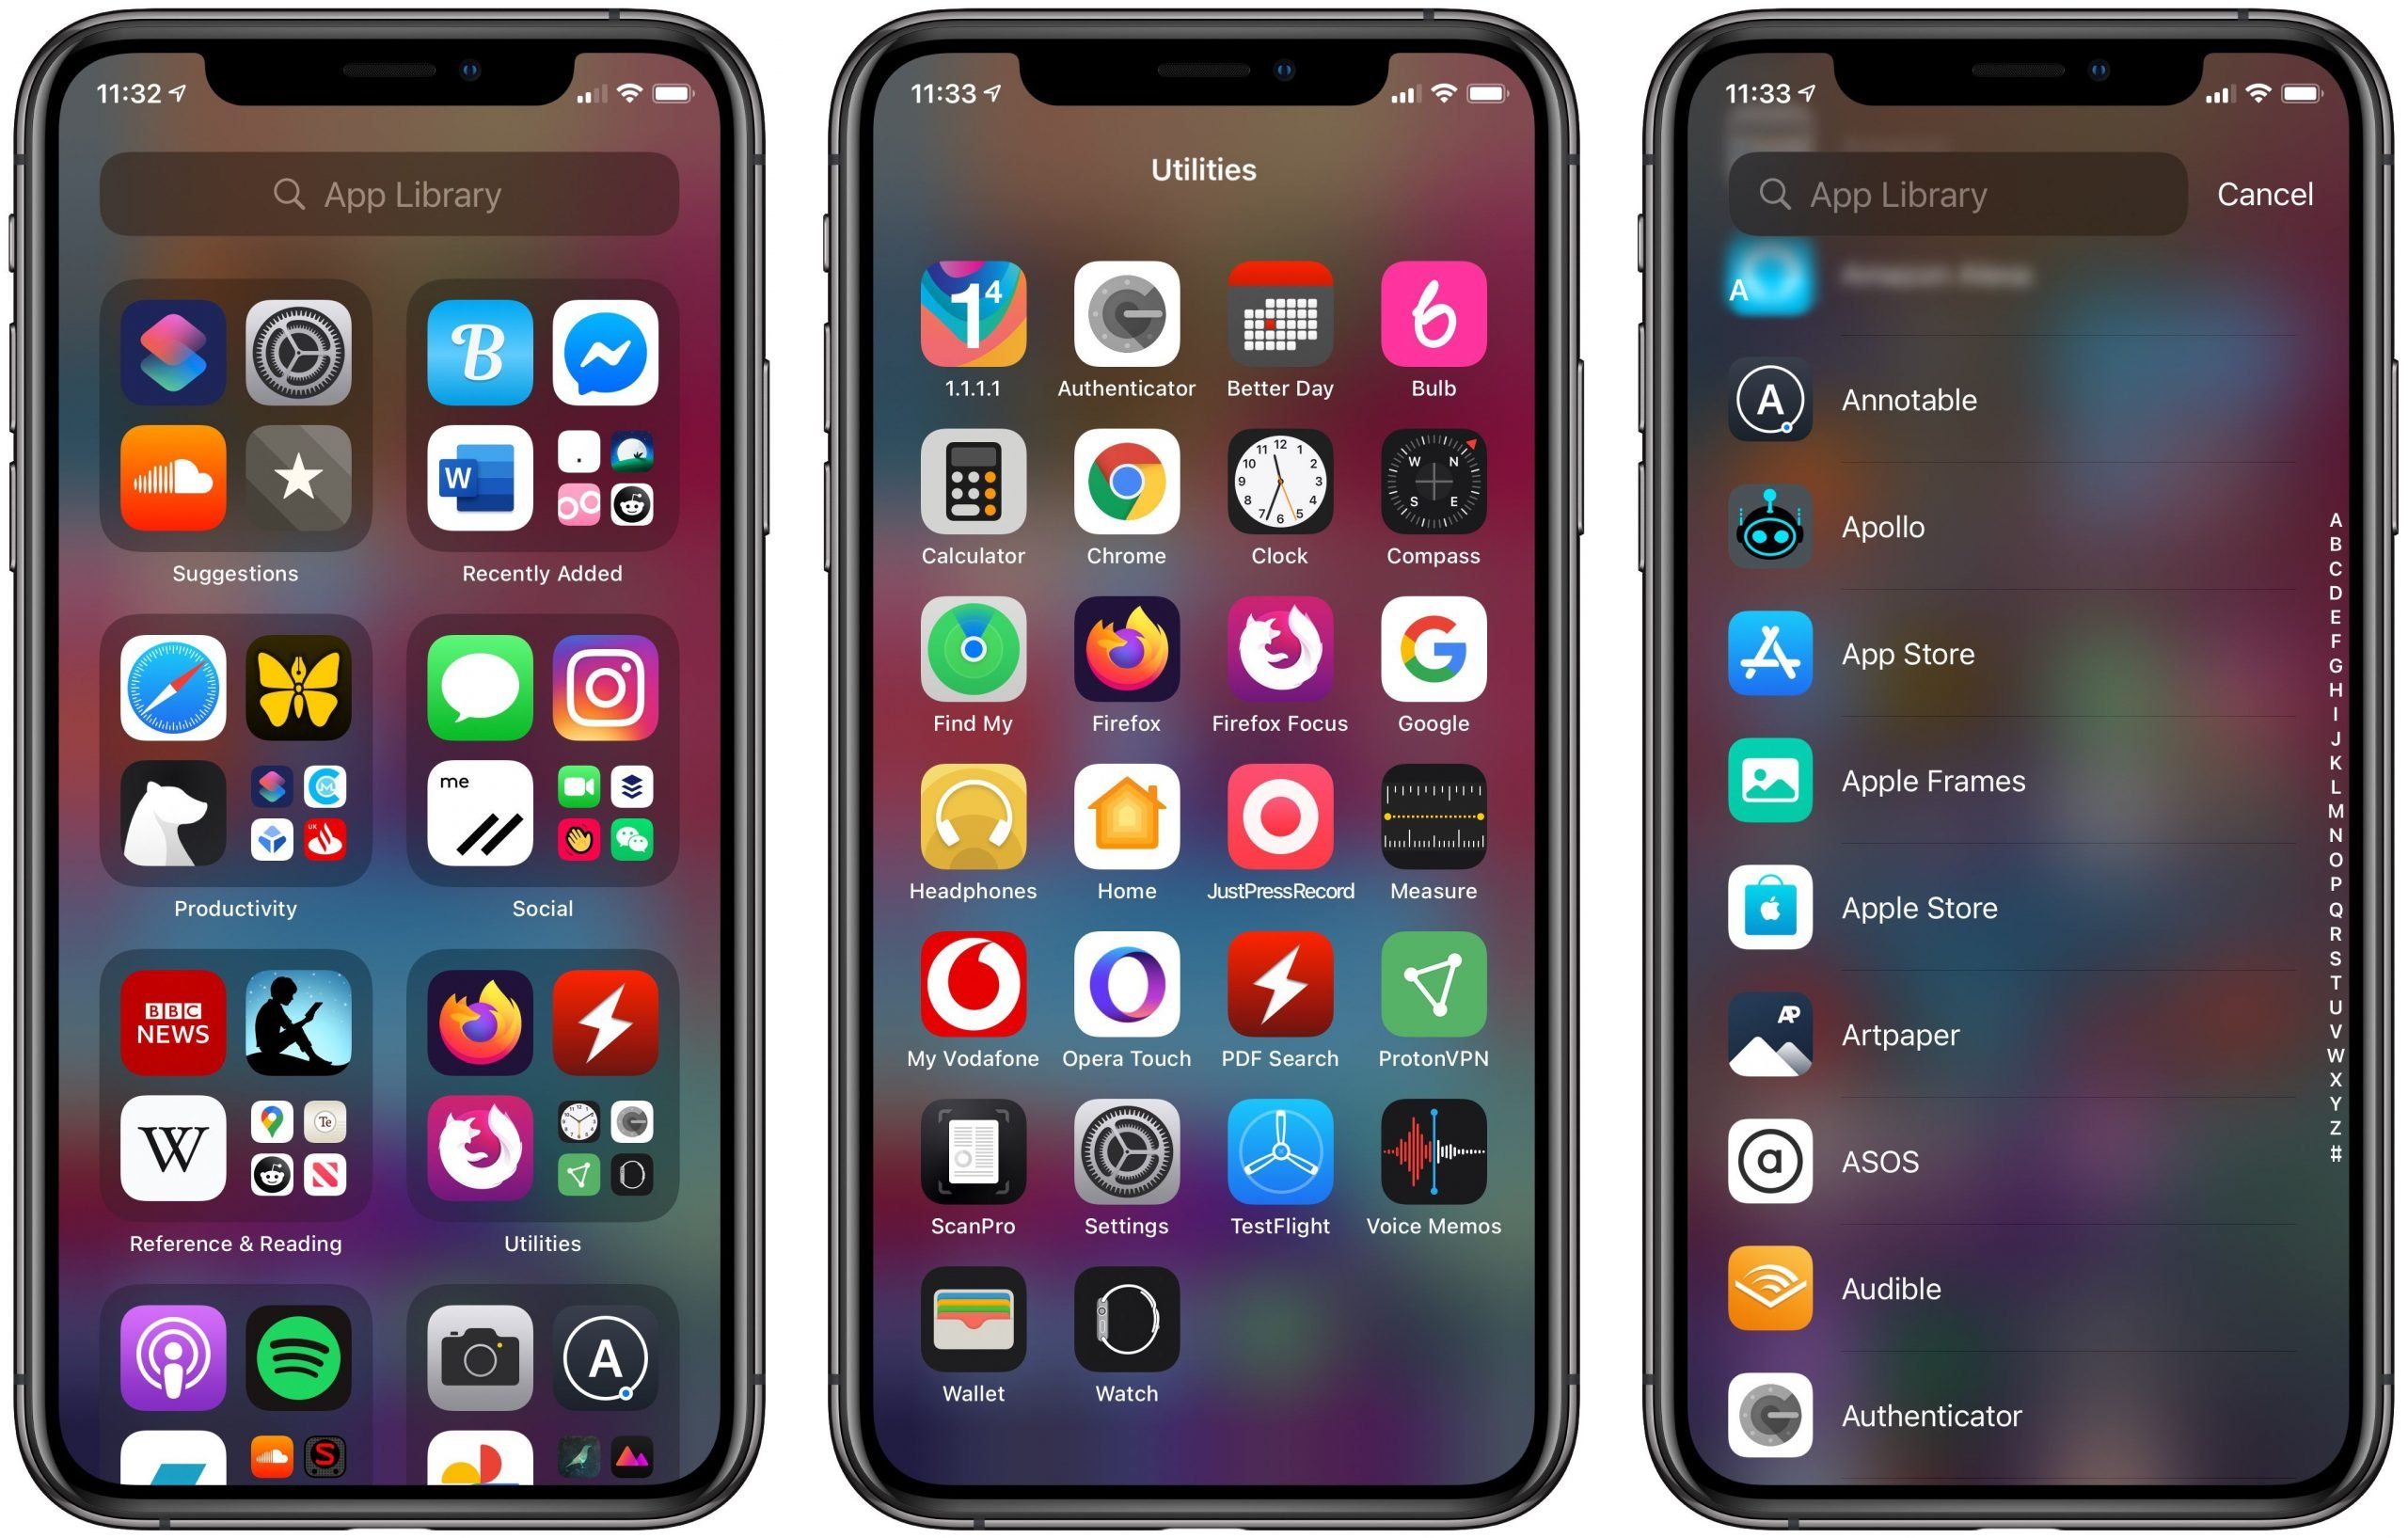 iOS 14: How to Use the App Library on iPhone